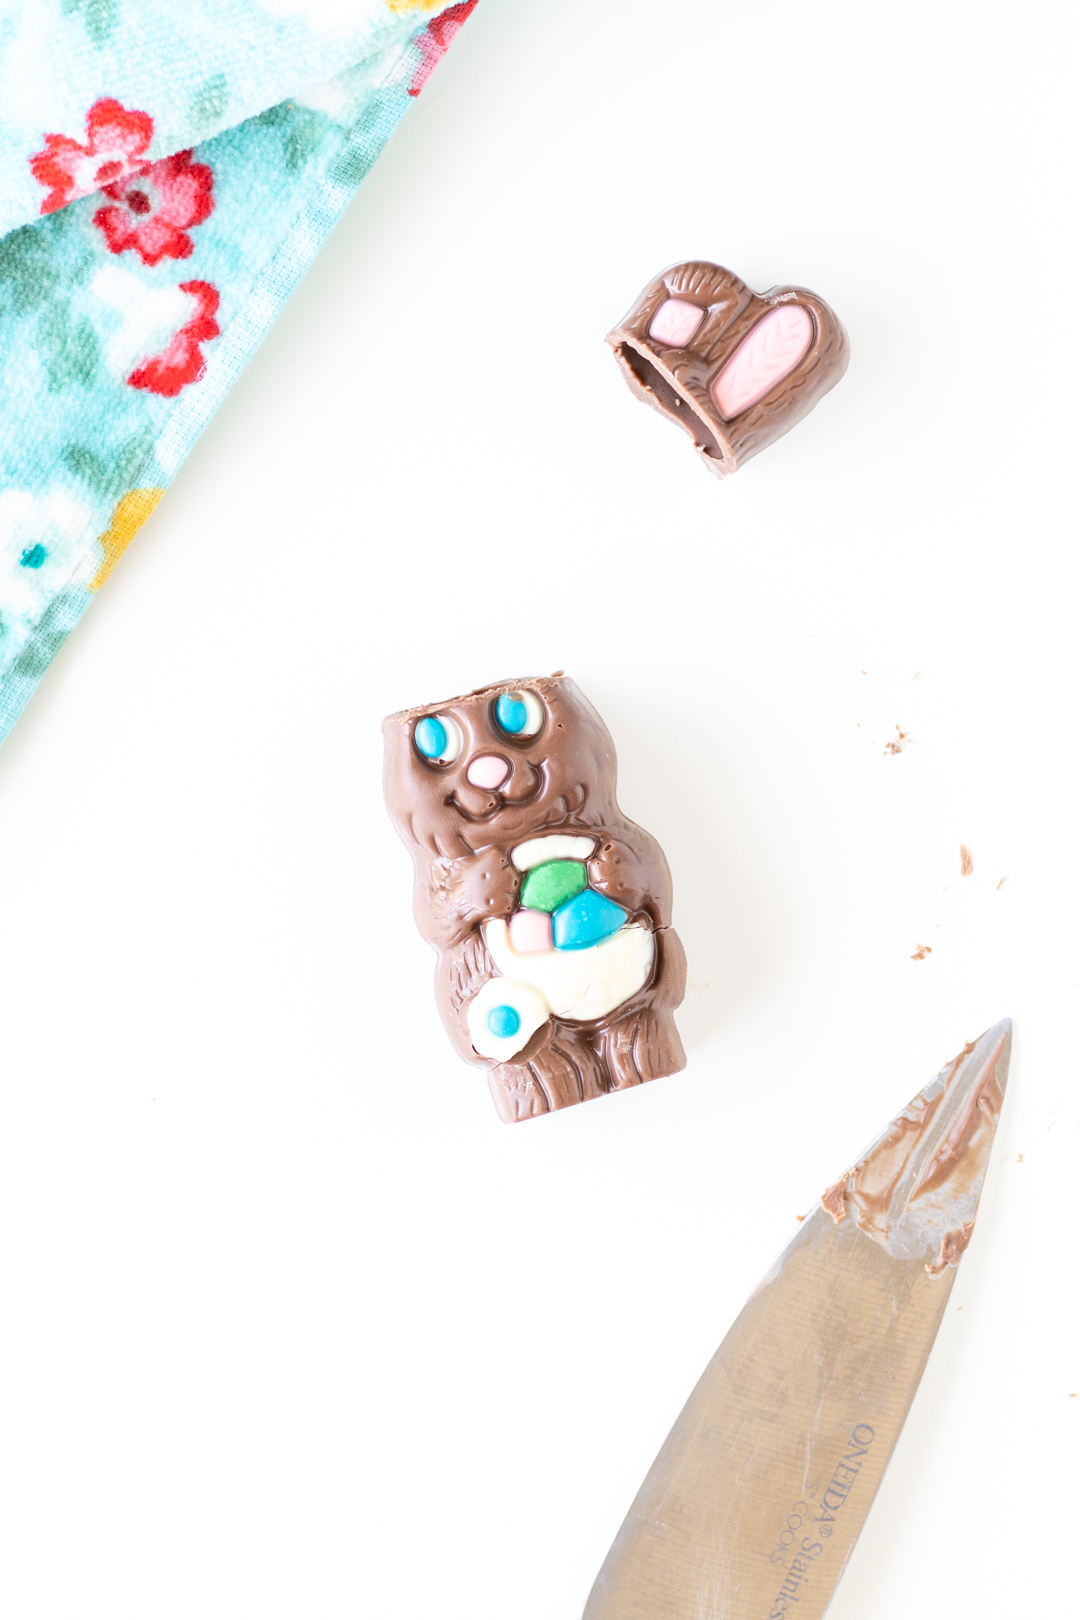 small hollow chocolate easter bunny with ears cut off. knife with melted chocolate on blade.